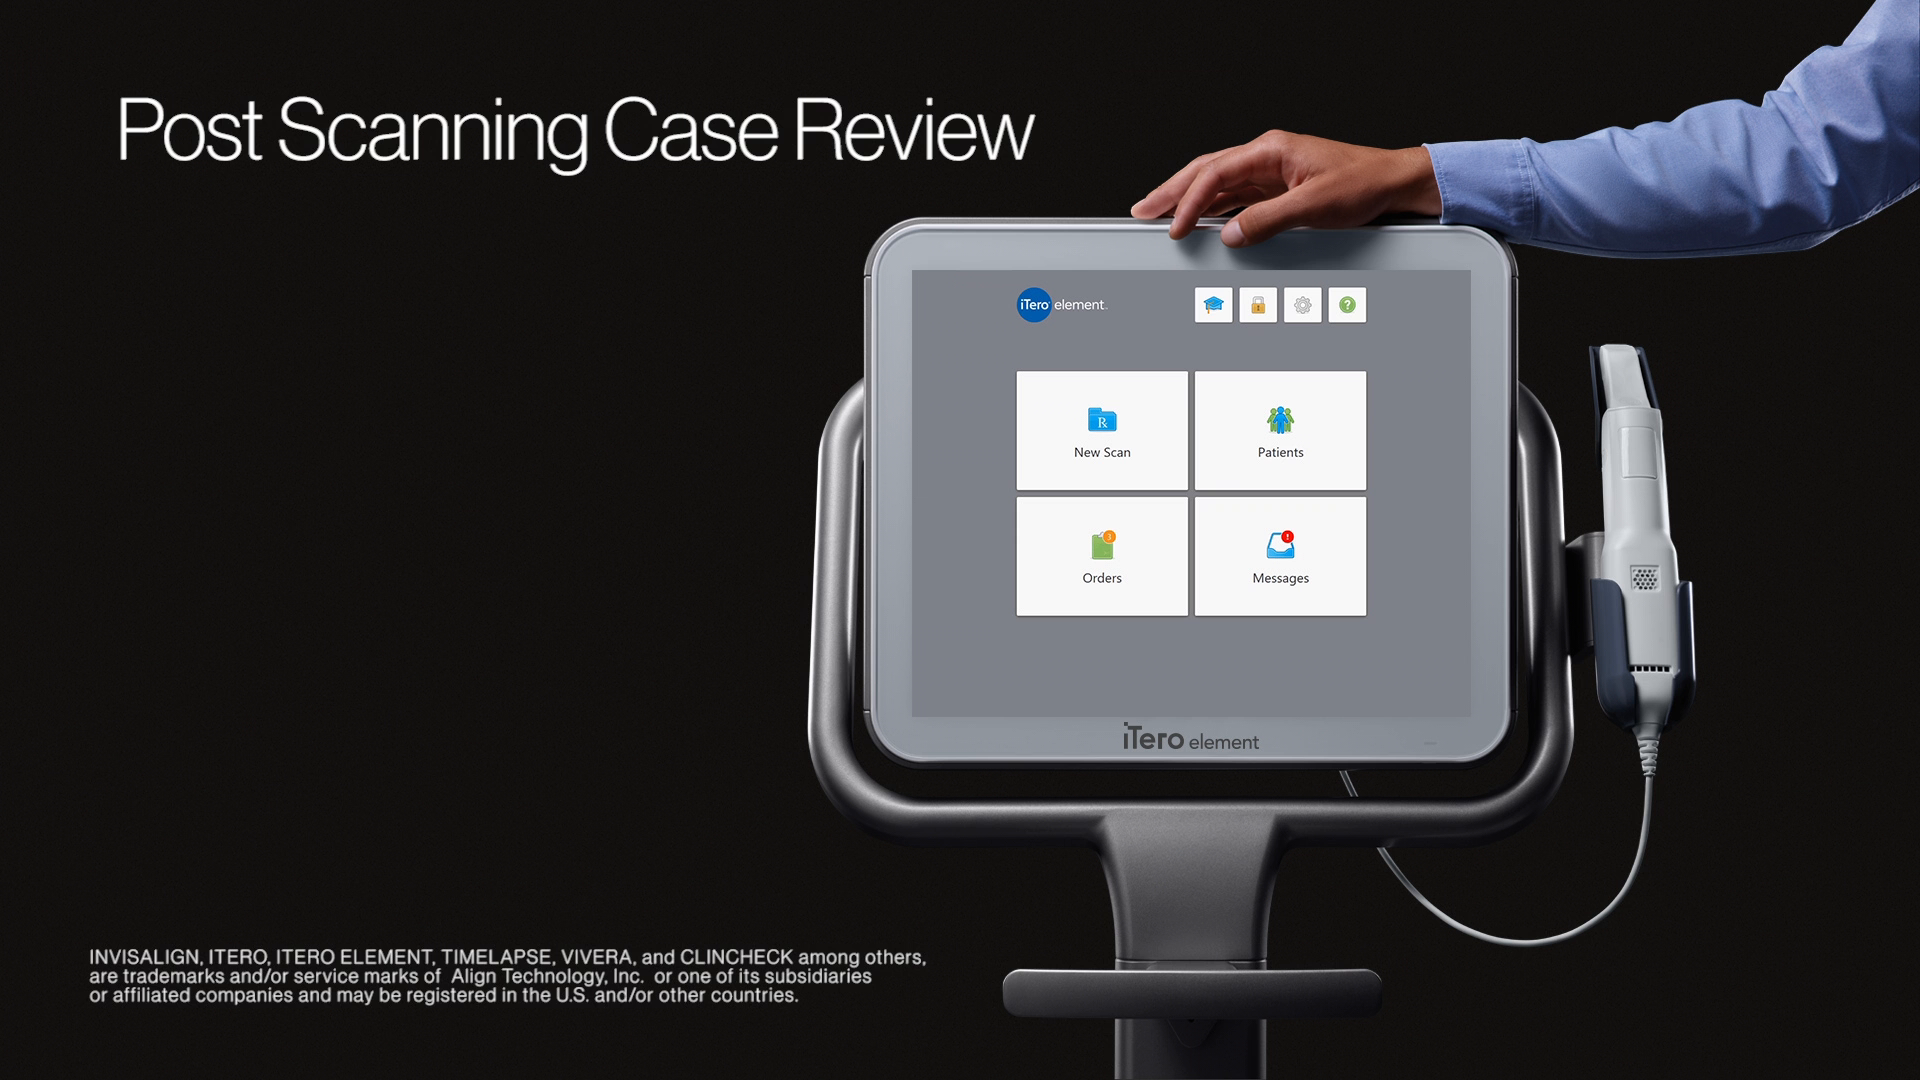 1:24 minutes:   Post-scanning case review